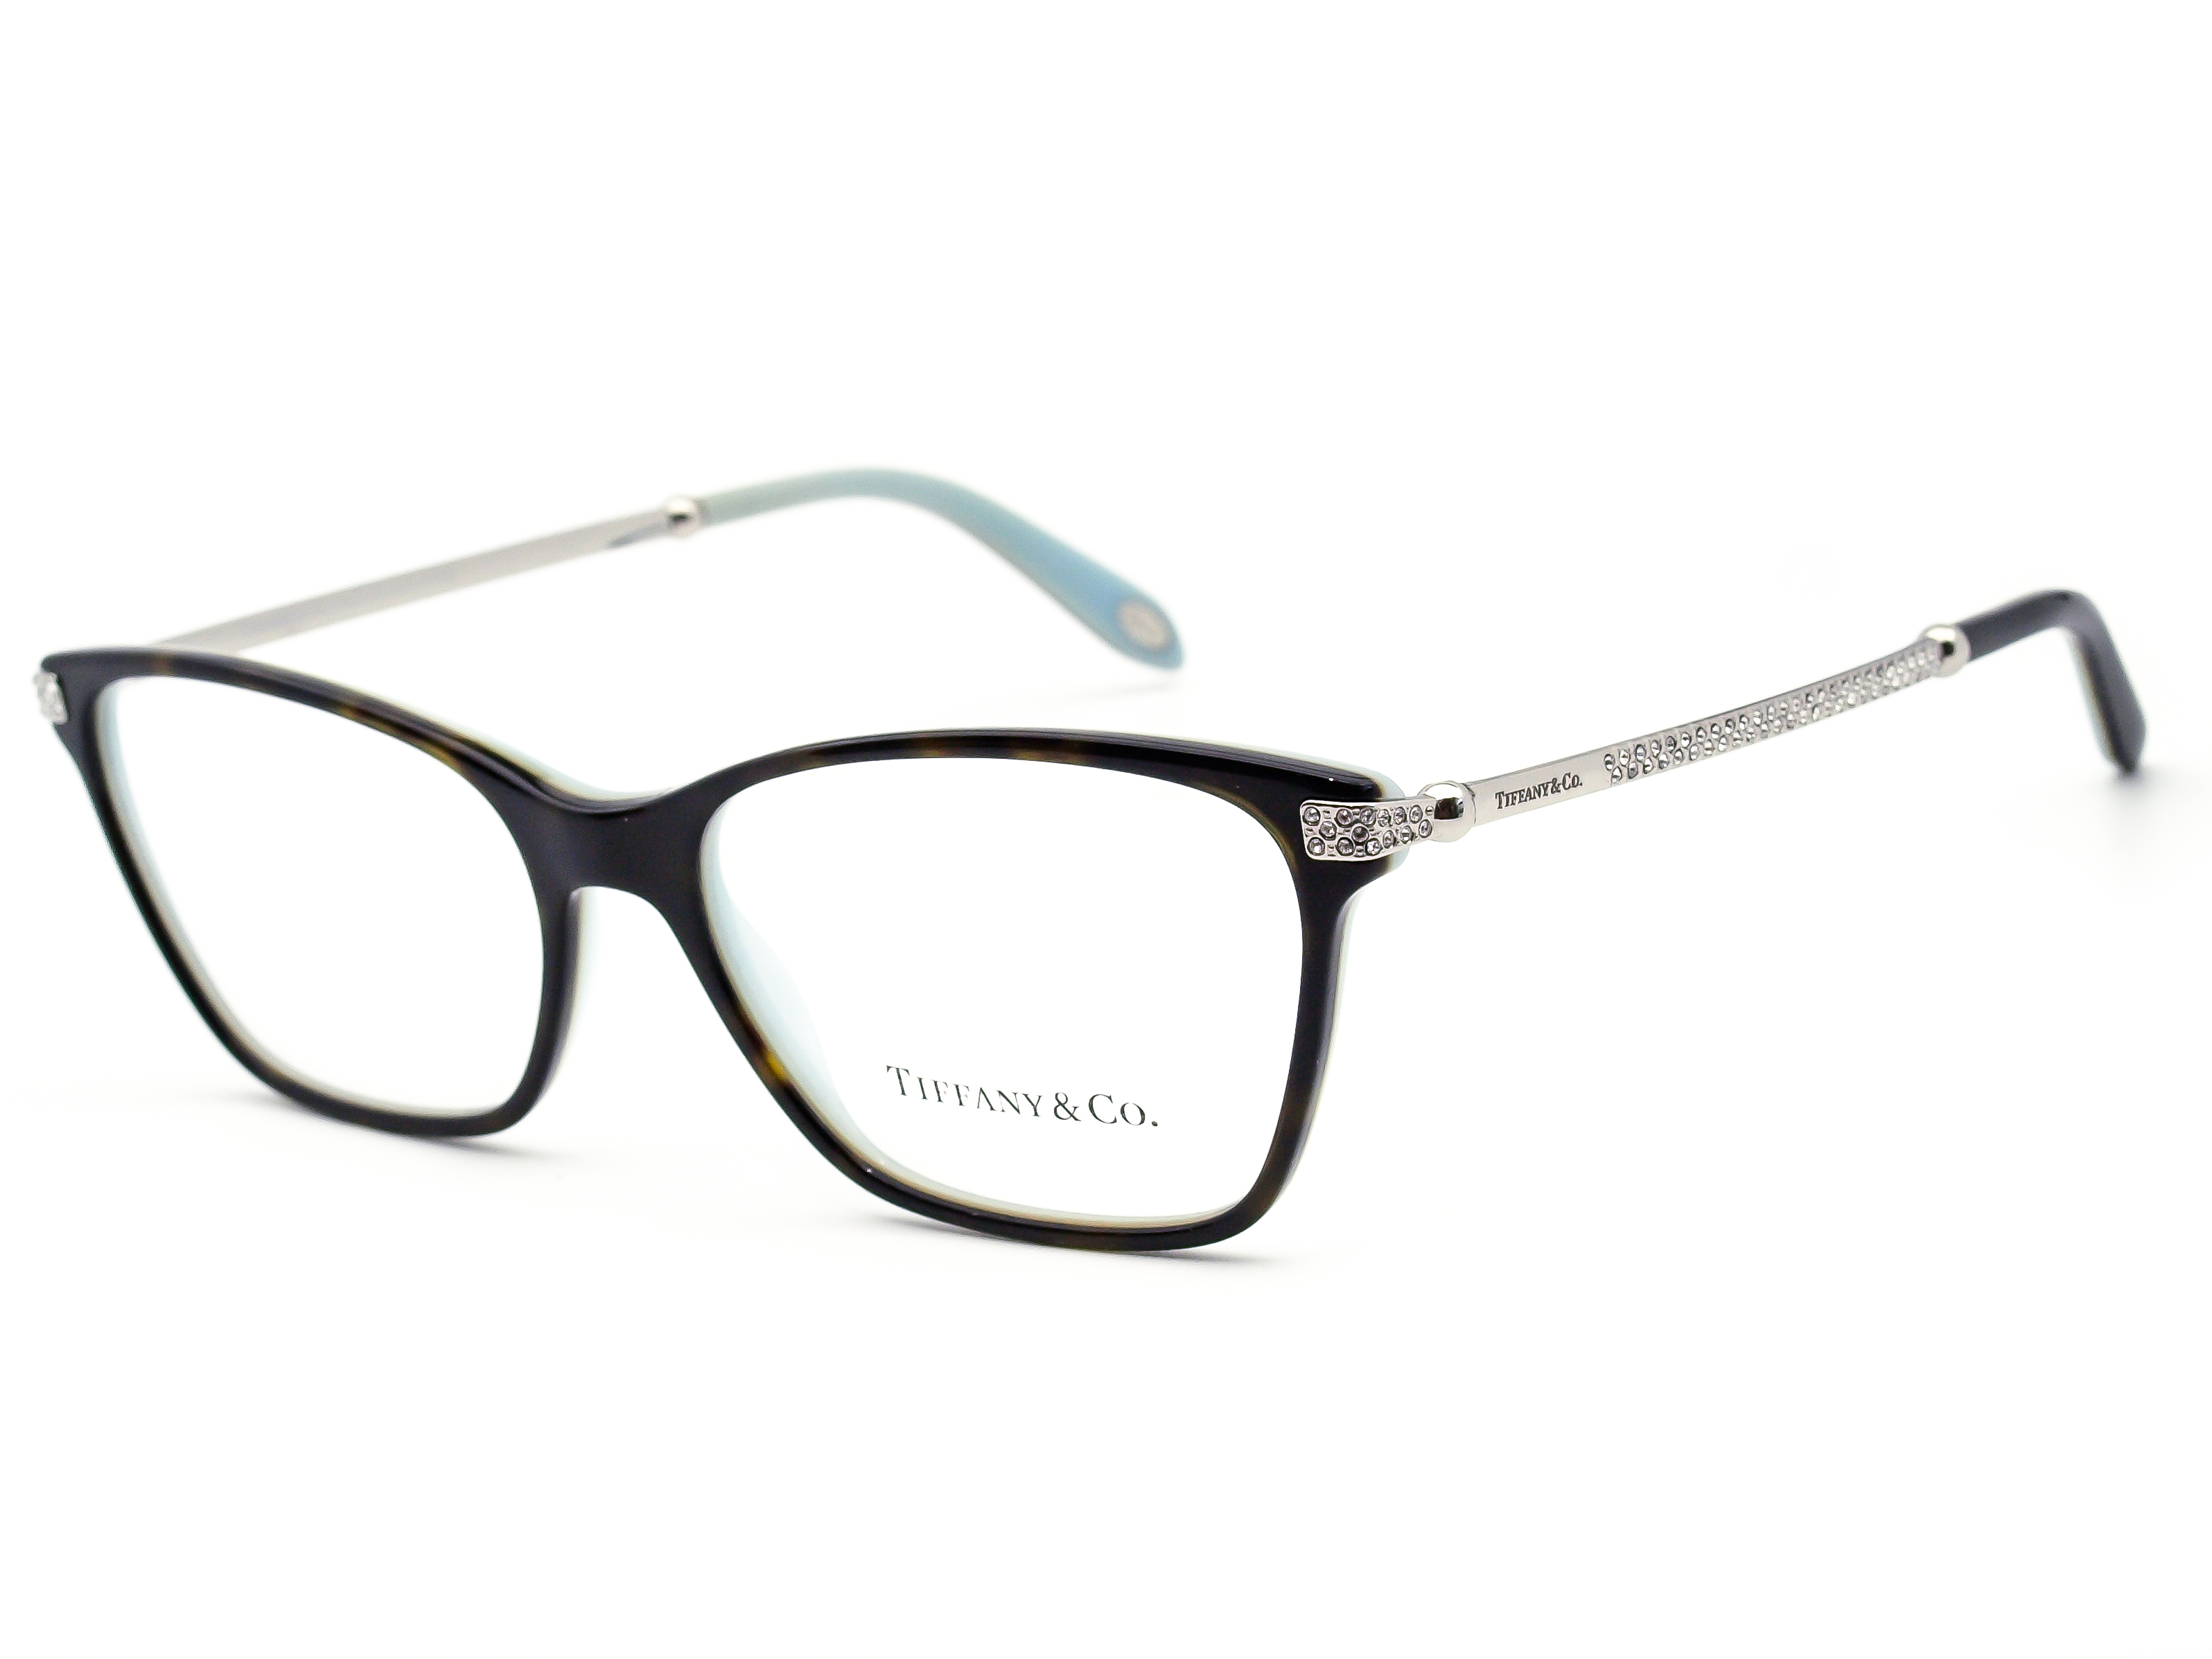 Tiffany & Co. TF 2158-B 8134 Eyeglasses